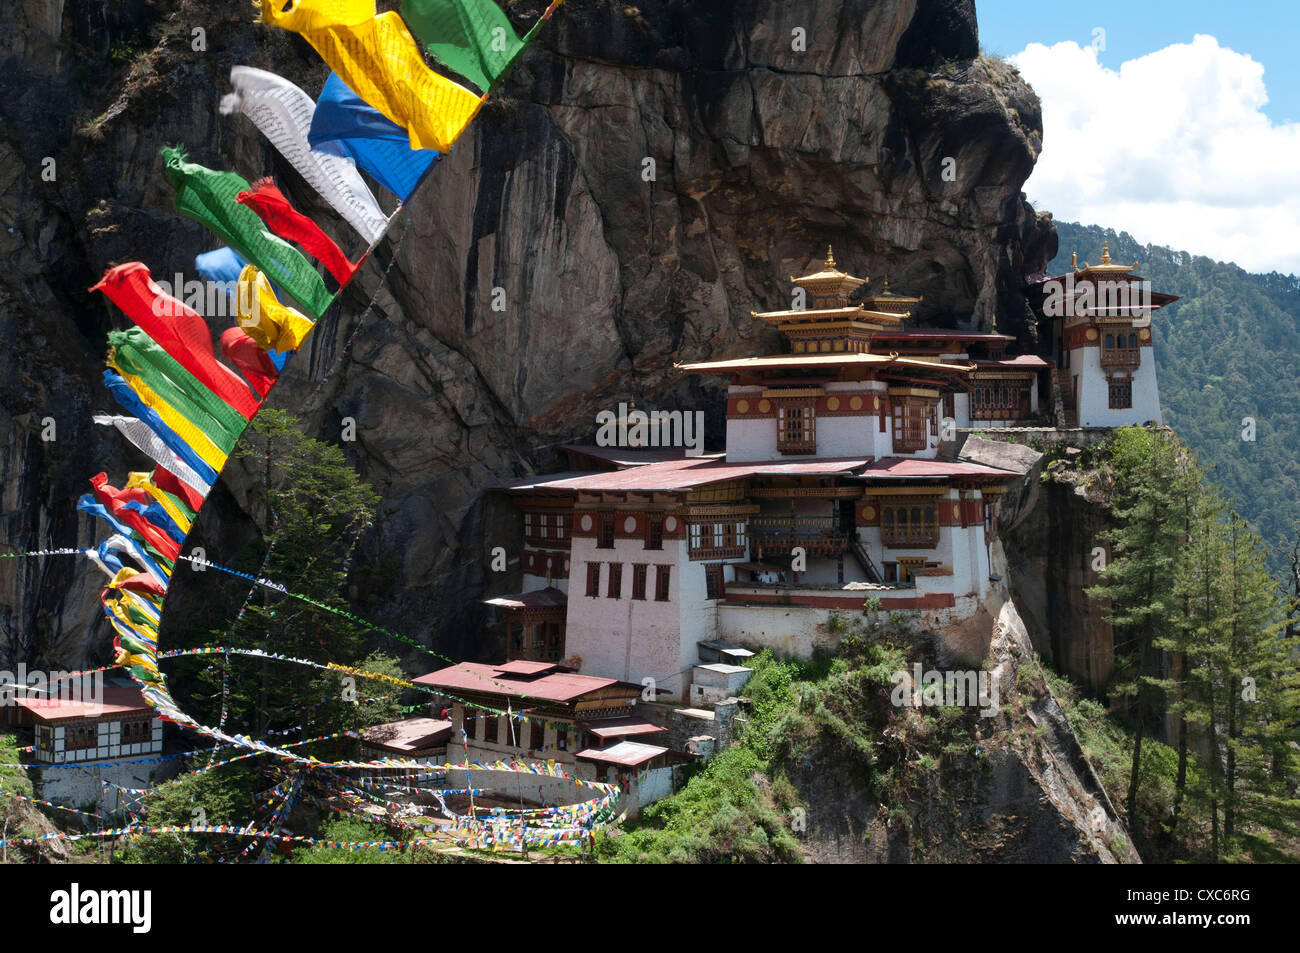 Taktshang Goemba (Tigers nest monastery) with prayer flags and cliff, Paro Valley, Bhutan, Asia - Stock Image